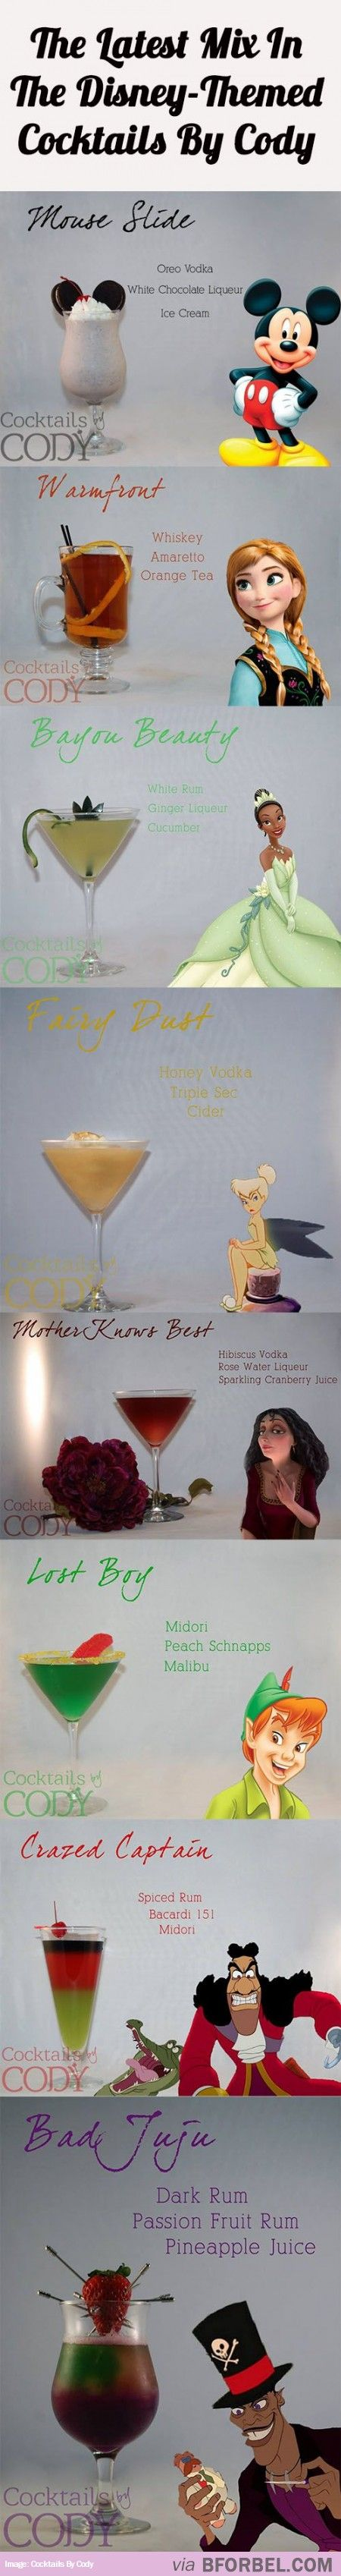 8 Of The Latest Disney-Themed Cocktails…The bad juju sounds really good to me. @Melinda Carroll (Swann)     LOL